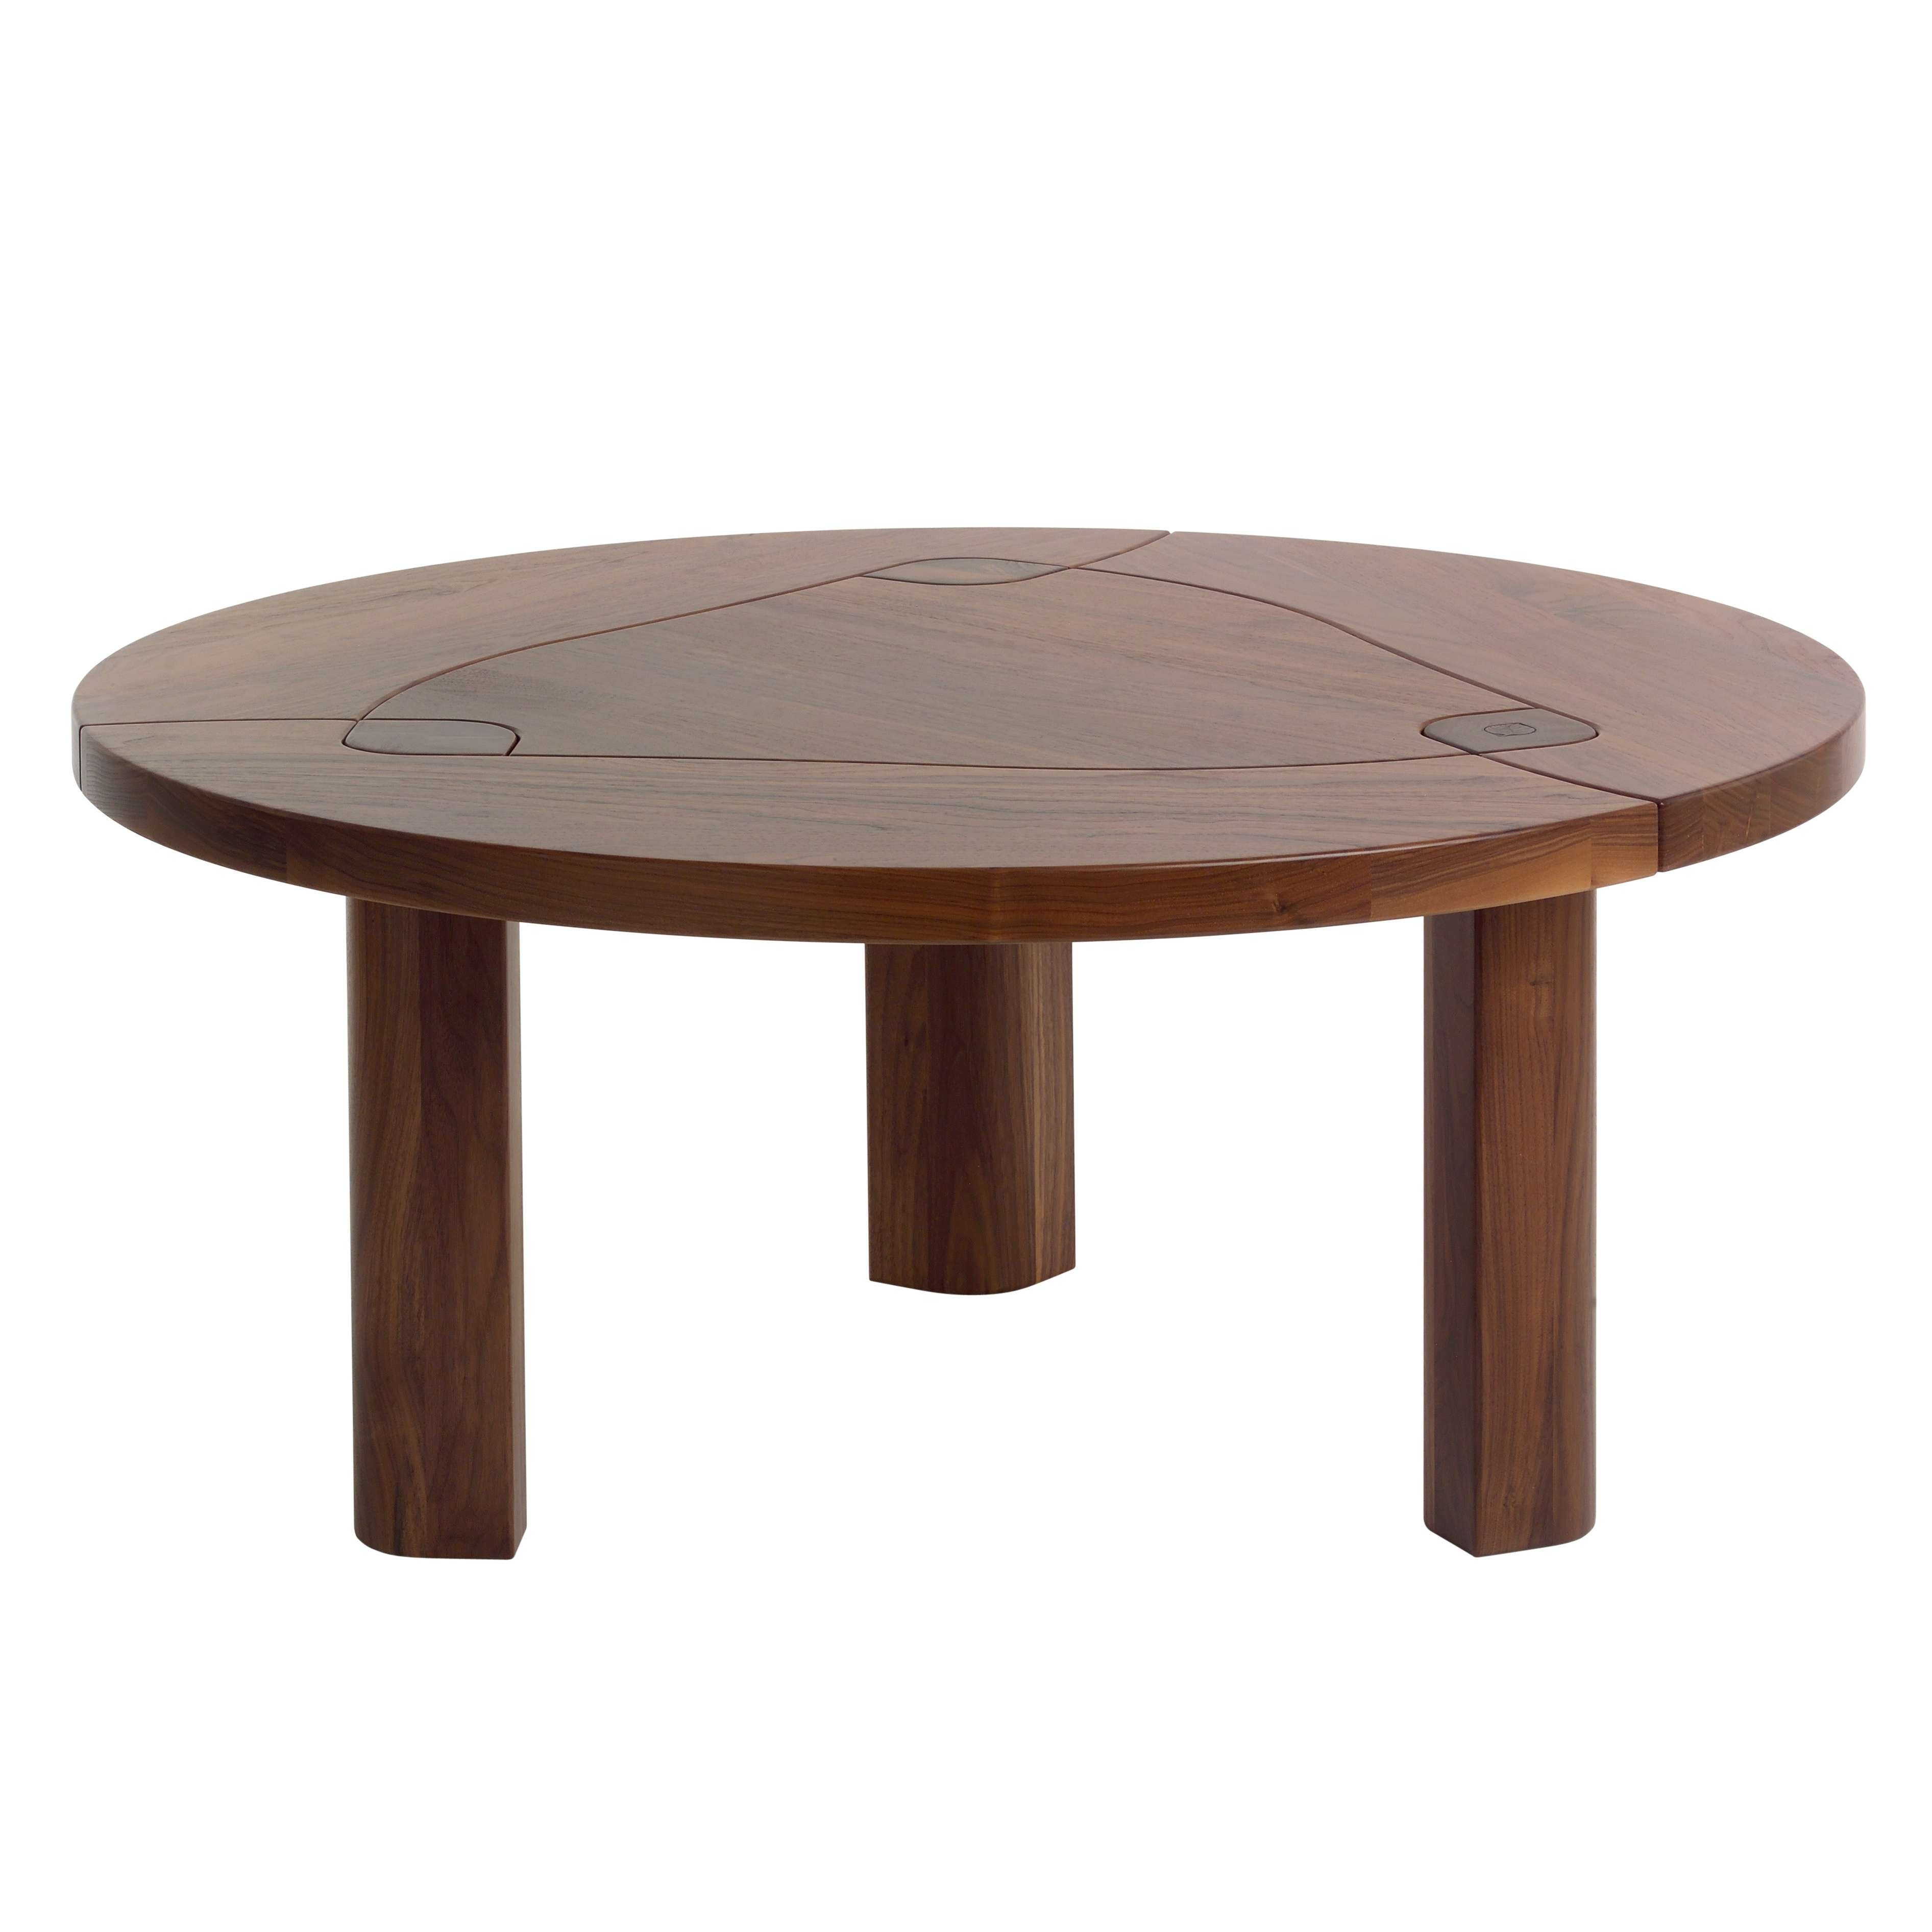 Latest Small Wood Coffee Tables For Great Small Wood Coffee Table 73 For Your Interior Decor Home With (View 2 of 20)